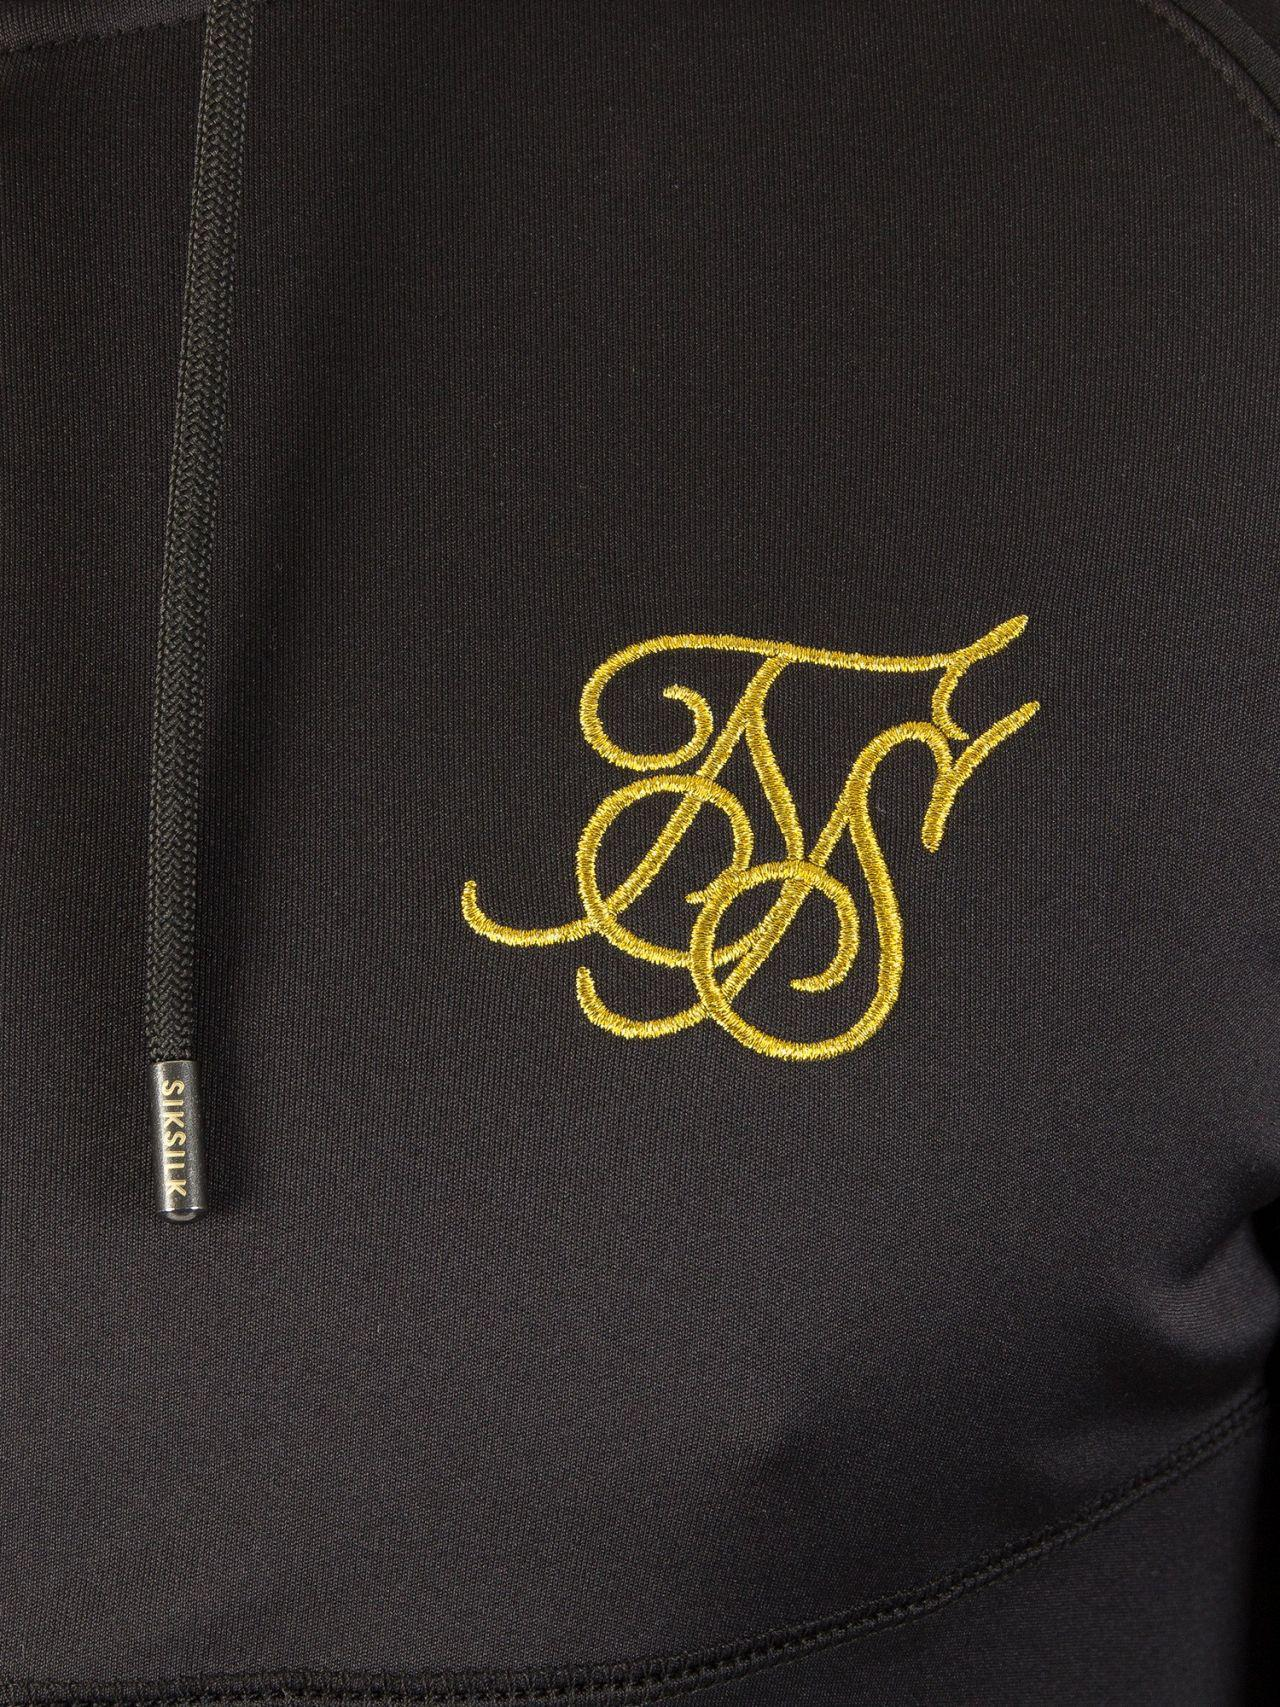 Lyst - Sik Silk Black gold Zonal Zip Logo Track Top Hoodie in Black ... 8c20d6369462